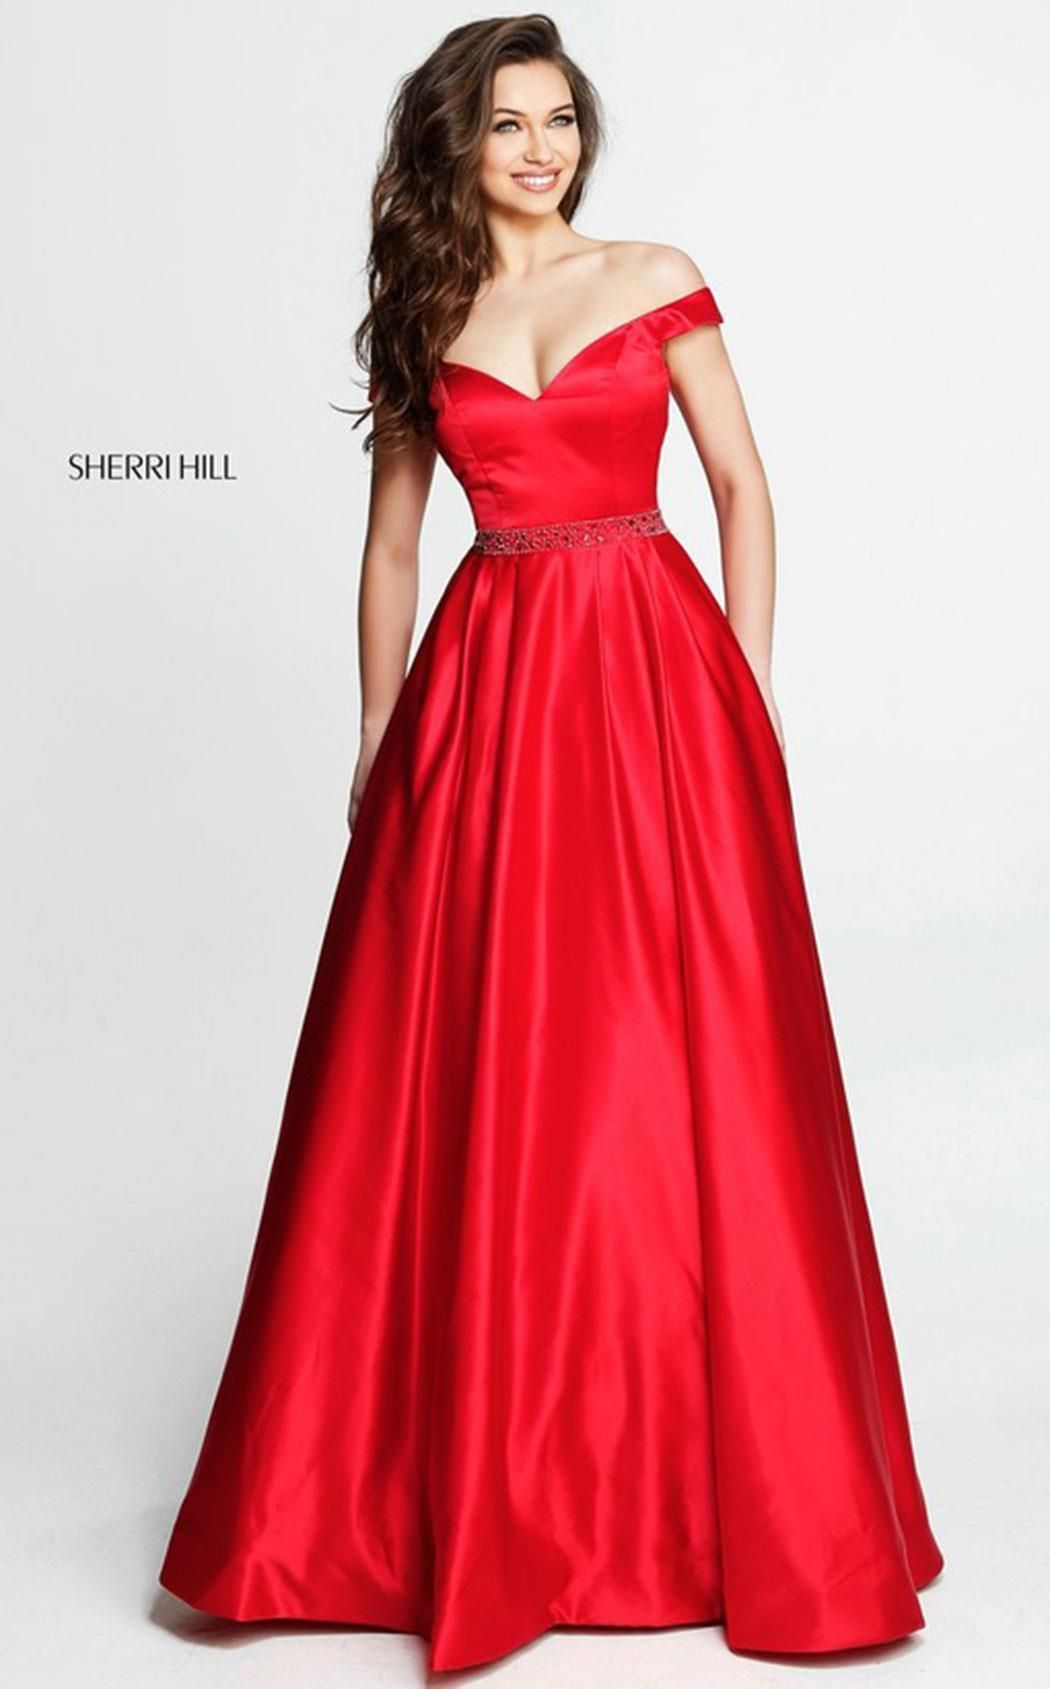 Sherri hill in formal attiretuxcakes u flowers